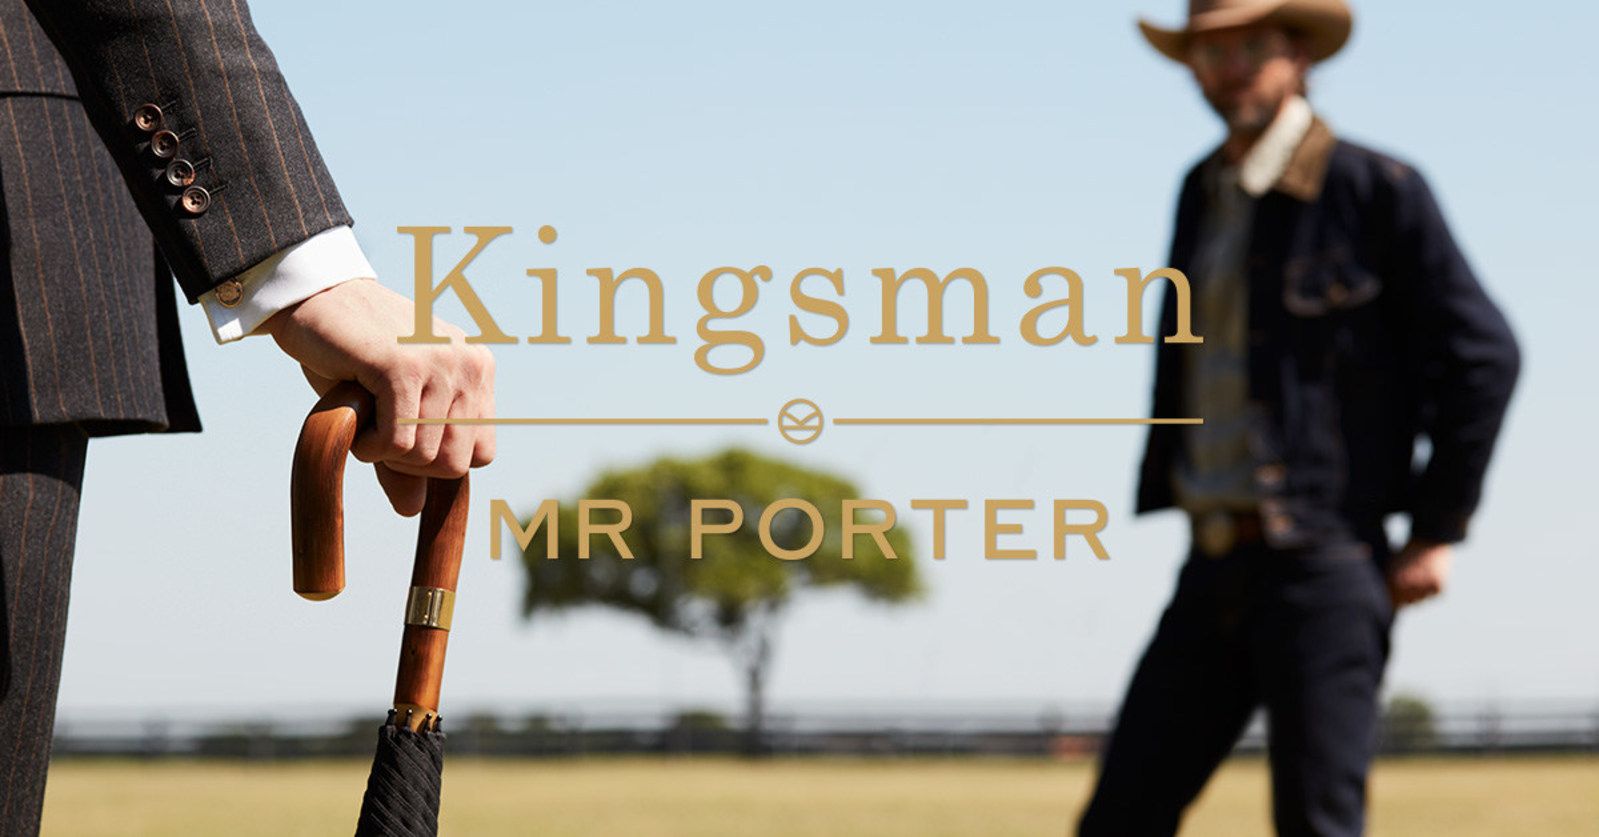 Mr. Porter x Kingsman Pop-Up Shop in London